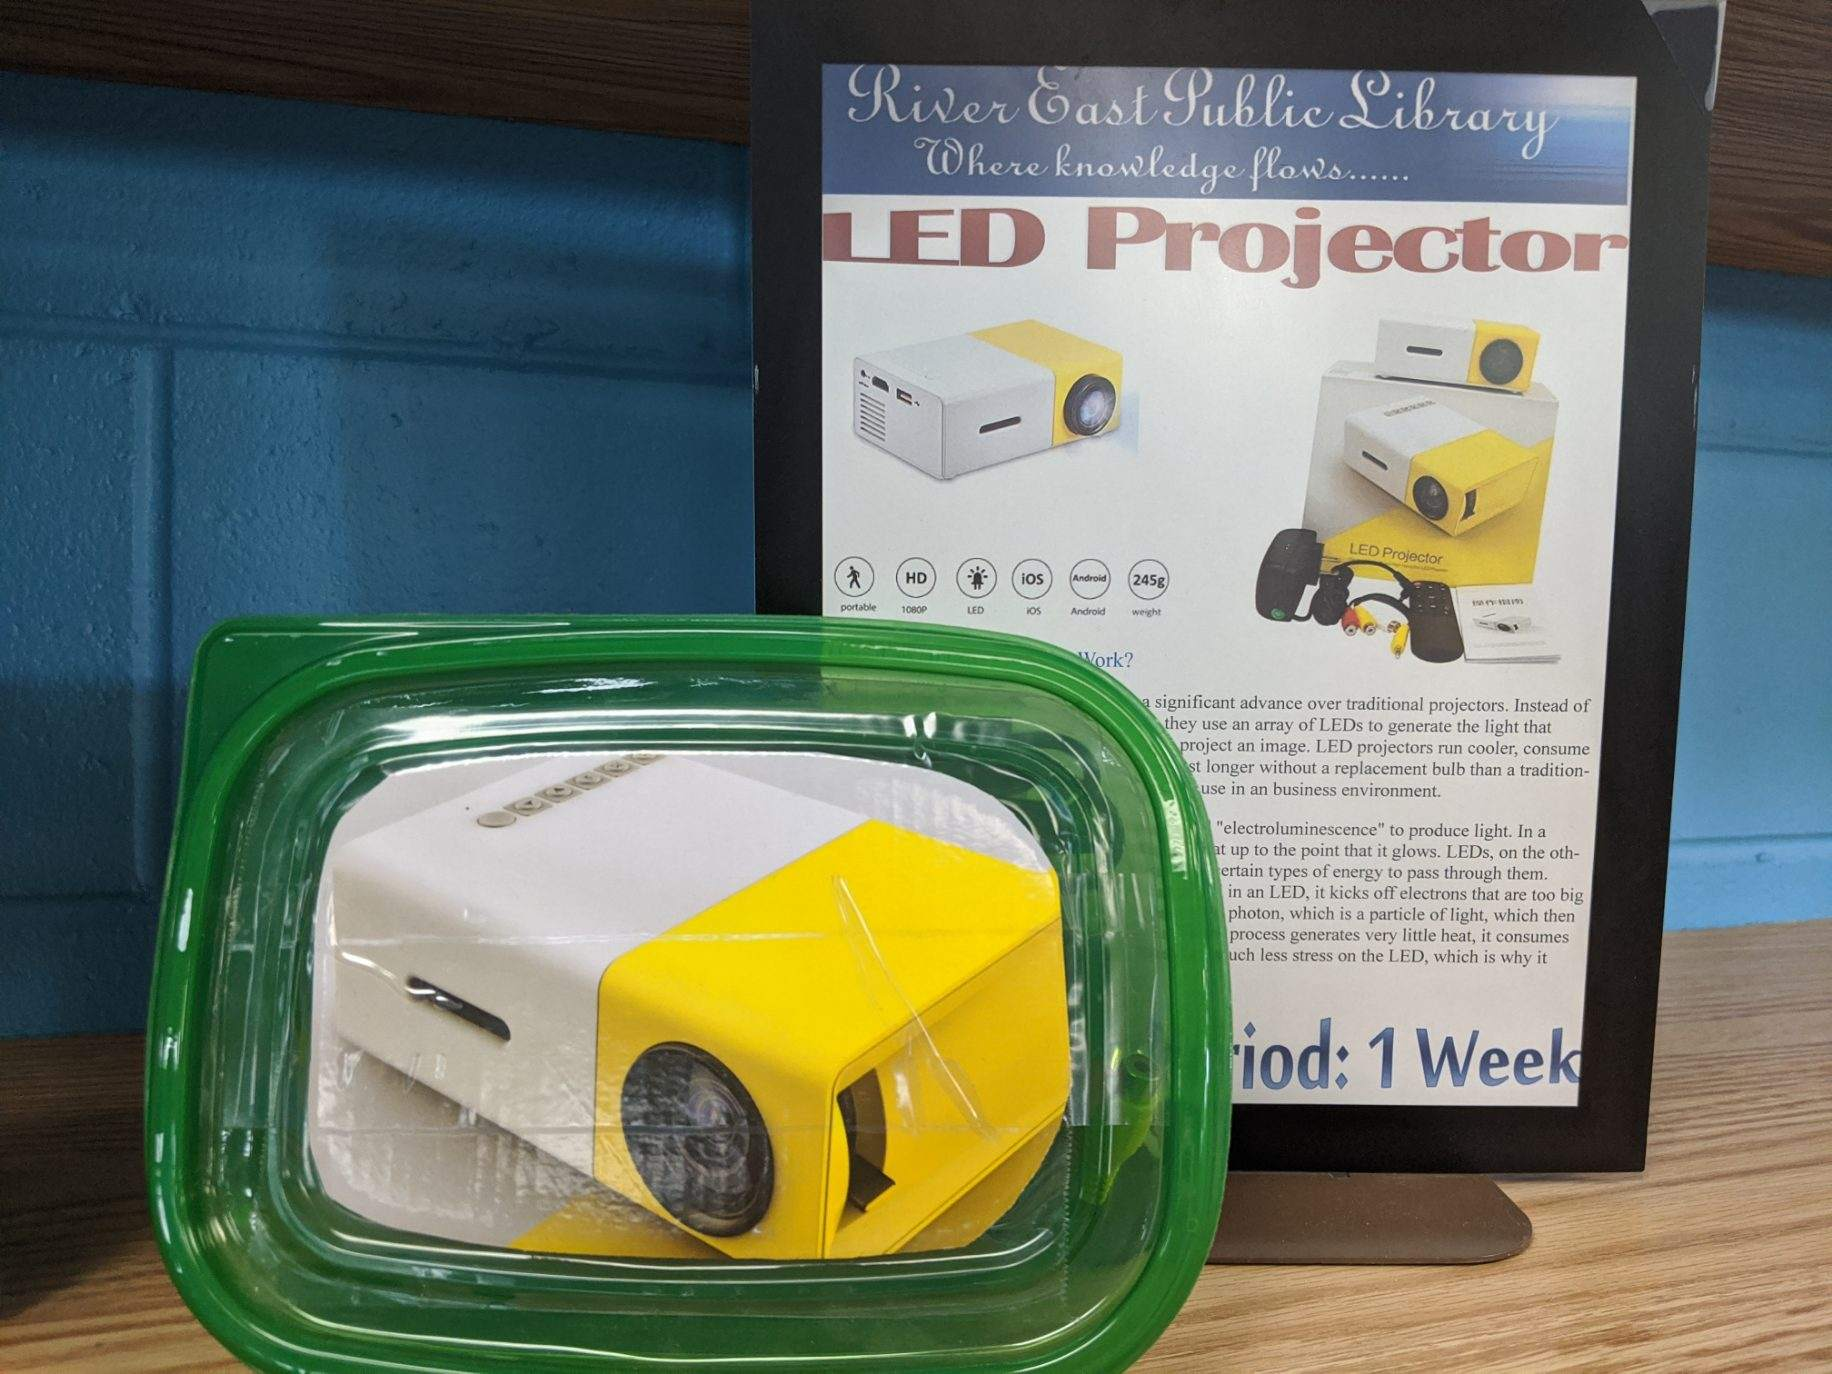 Image of an LED Projector